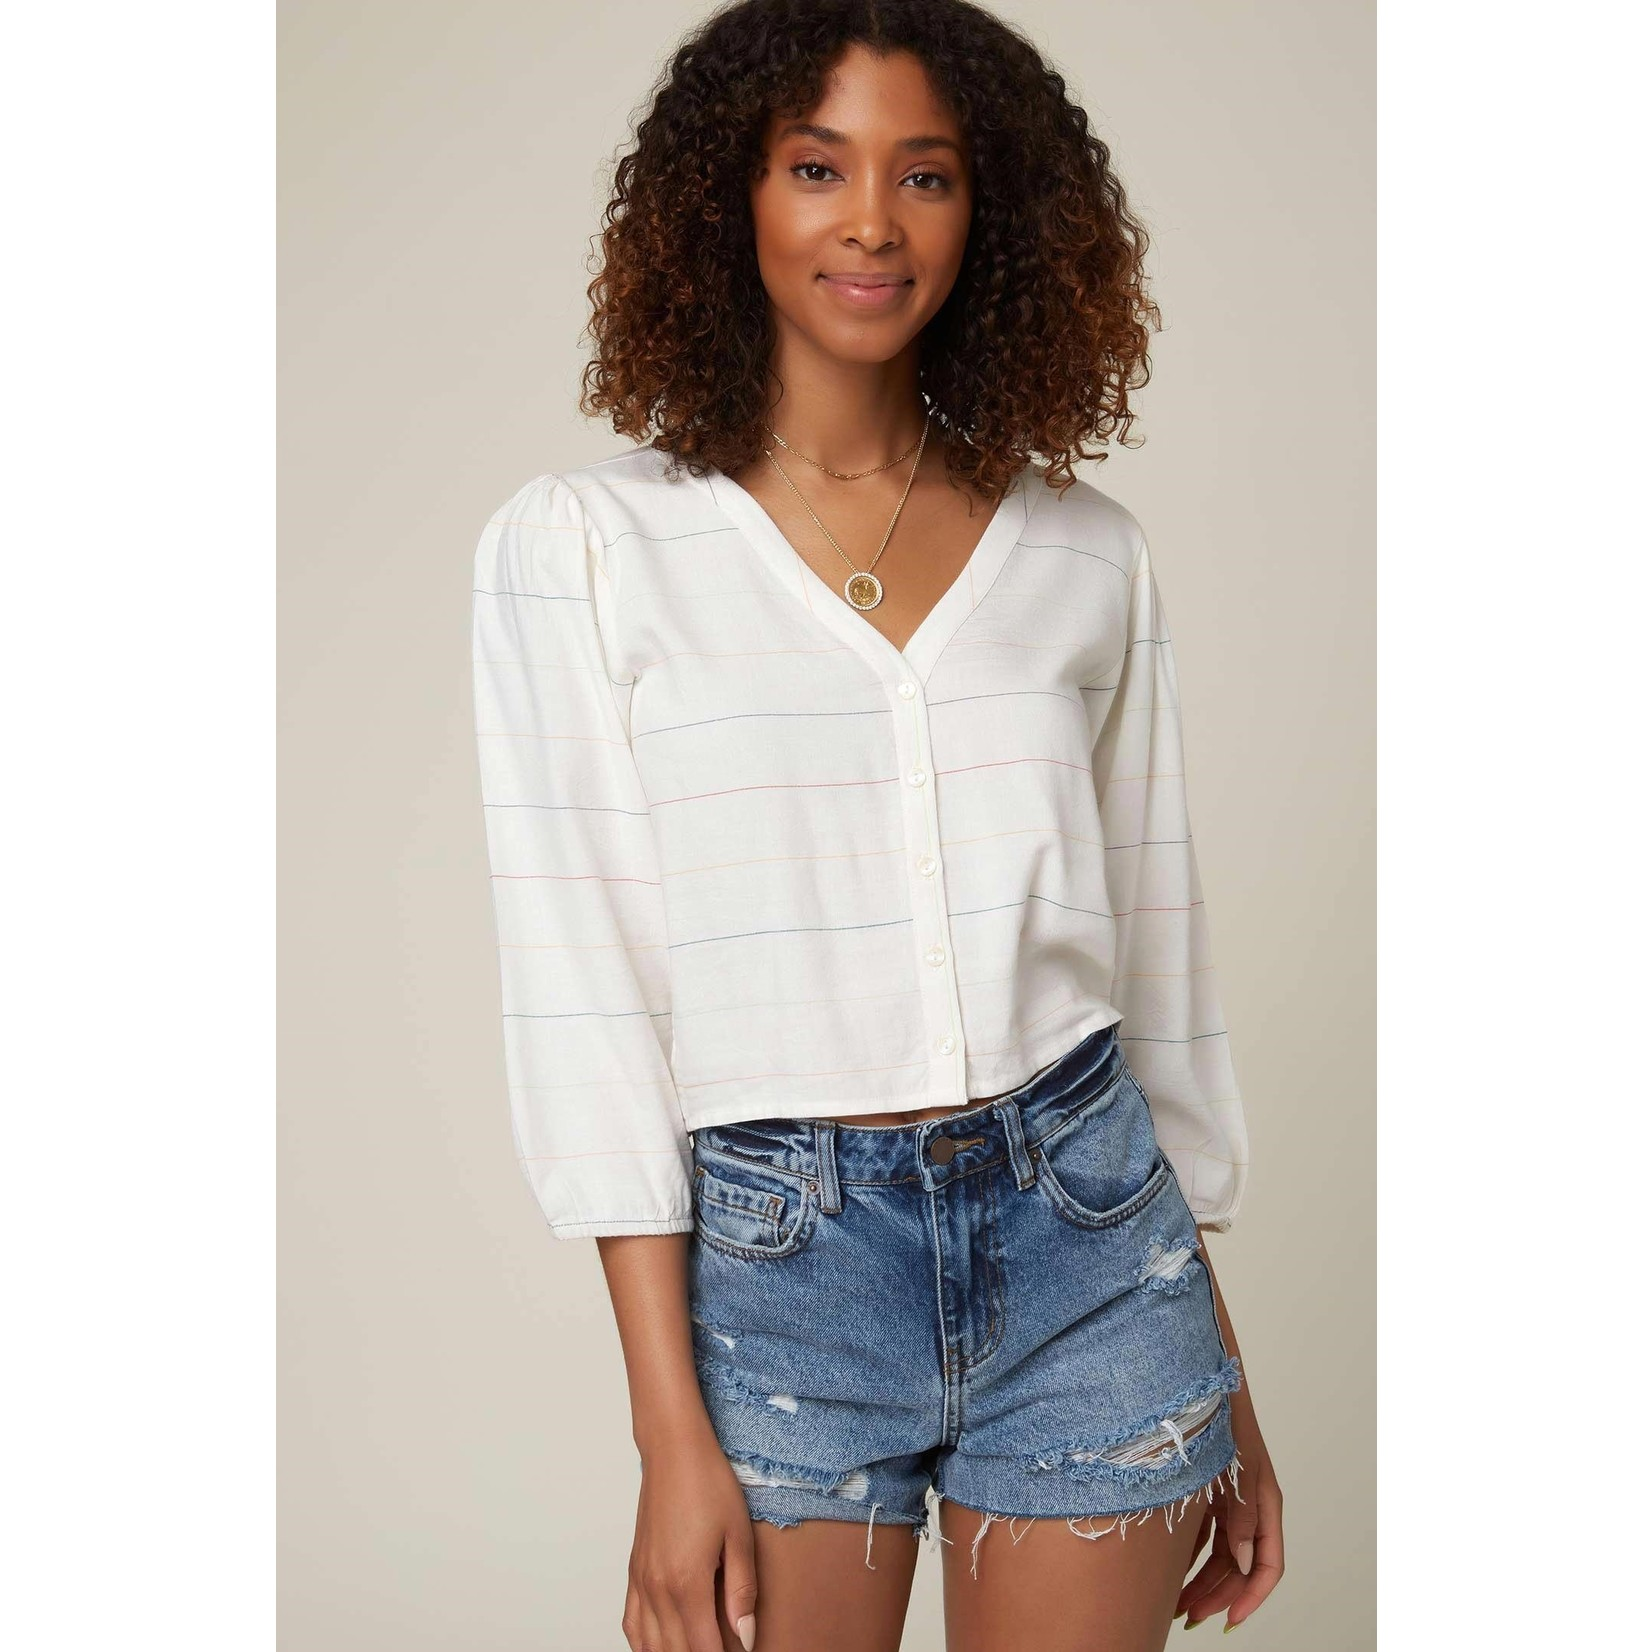 Oneill CLEMENTINE TOP